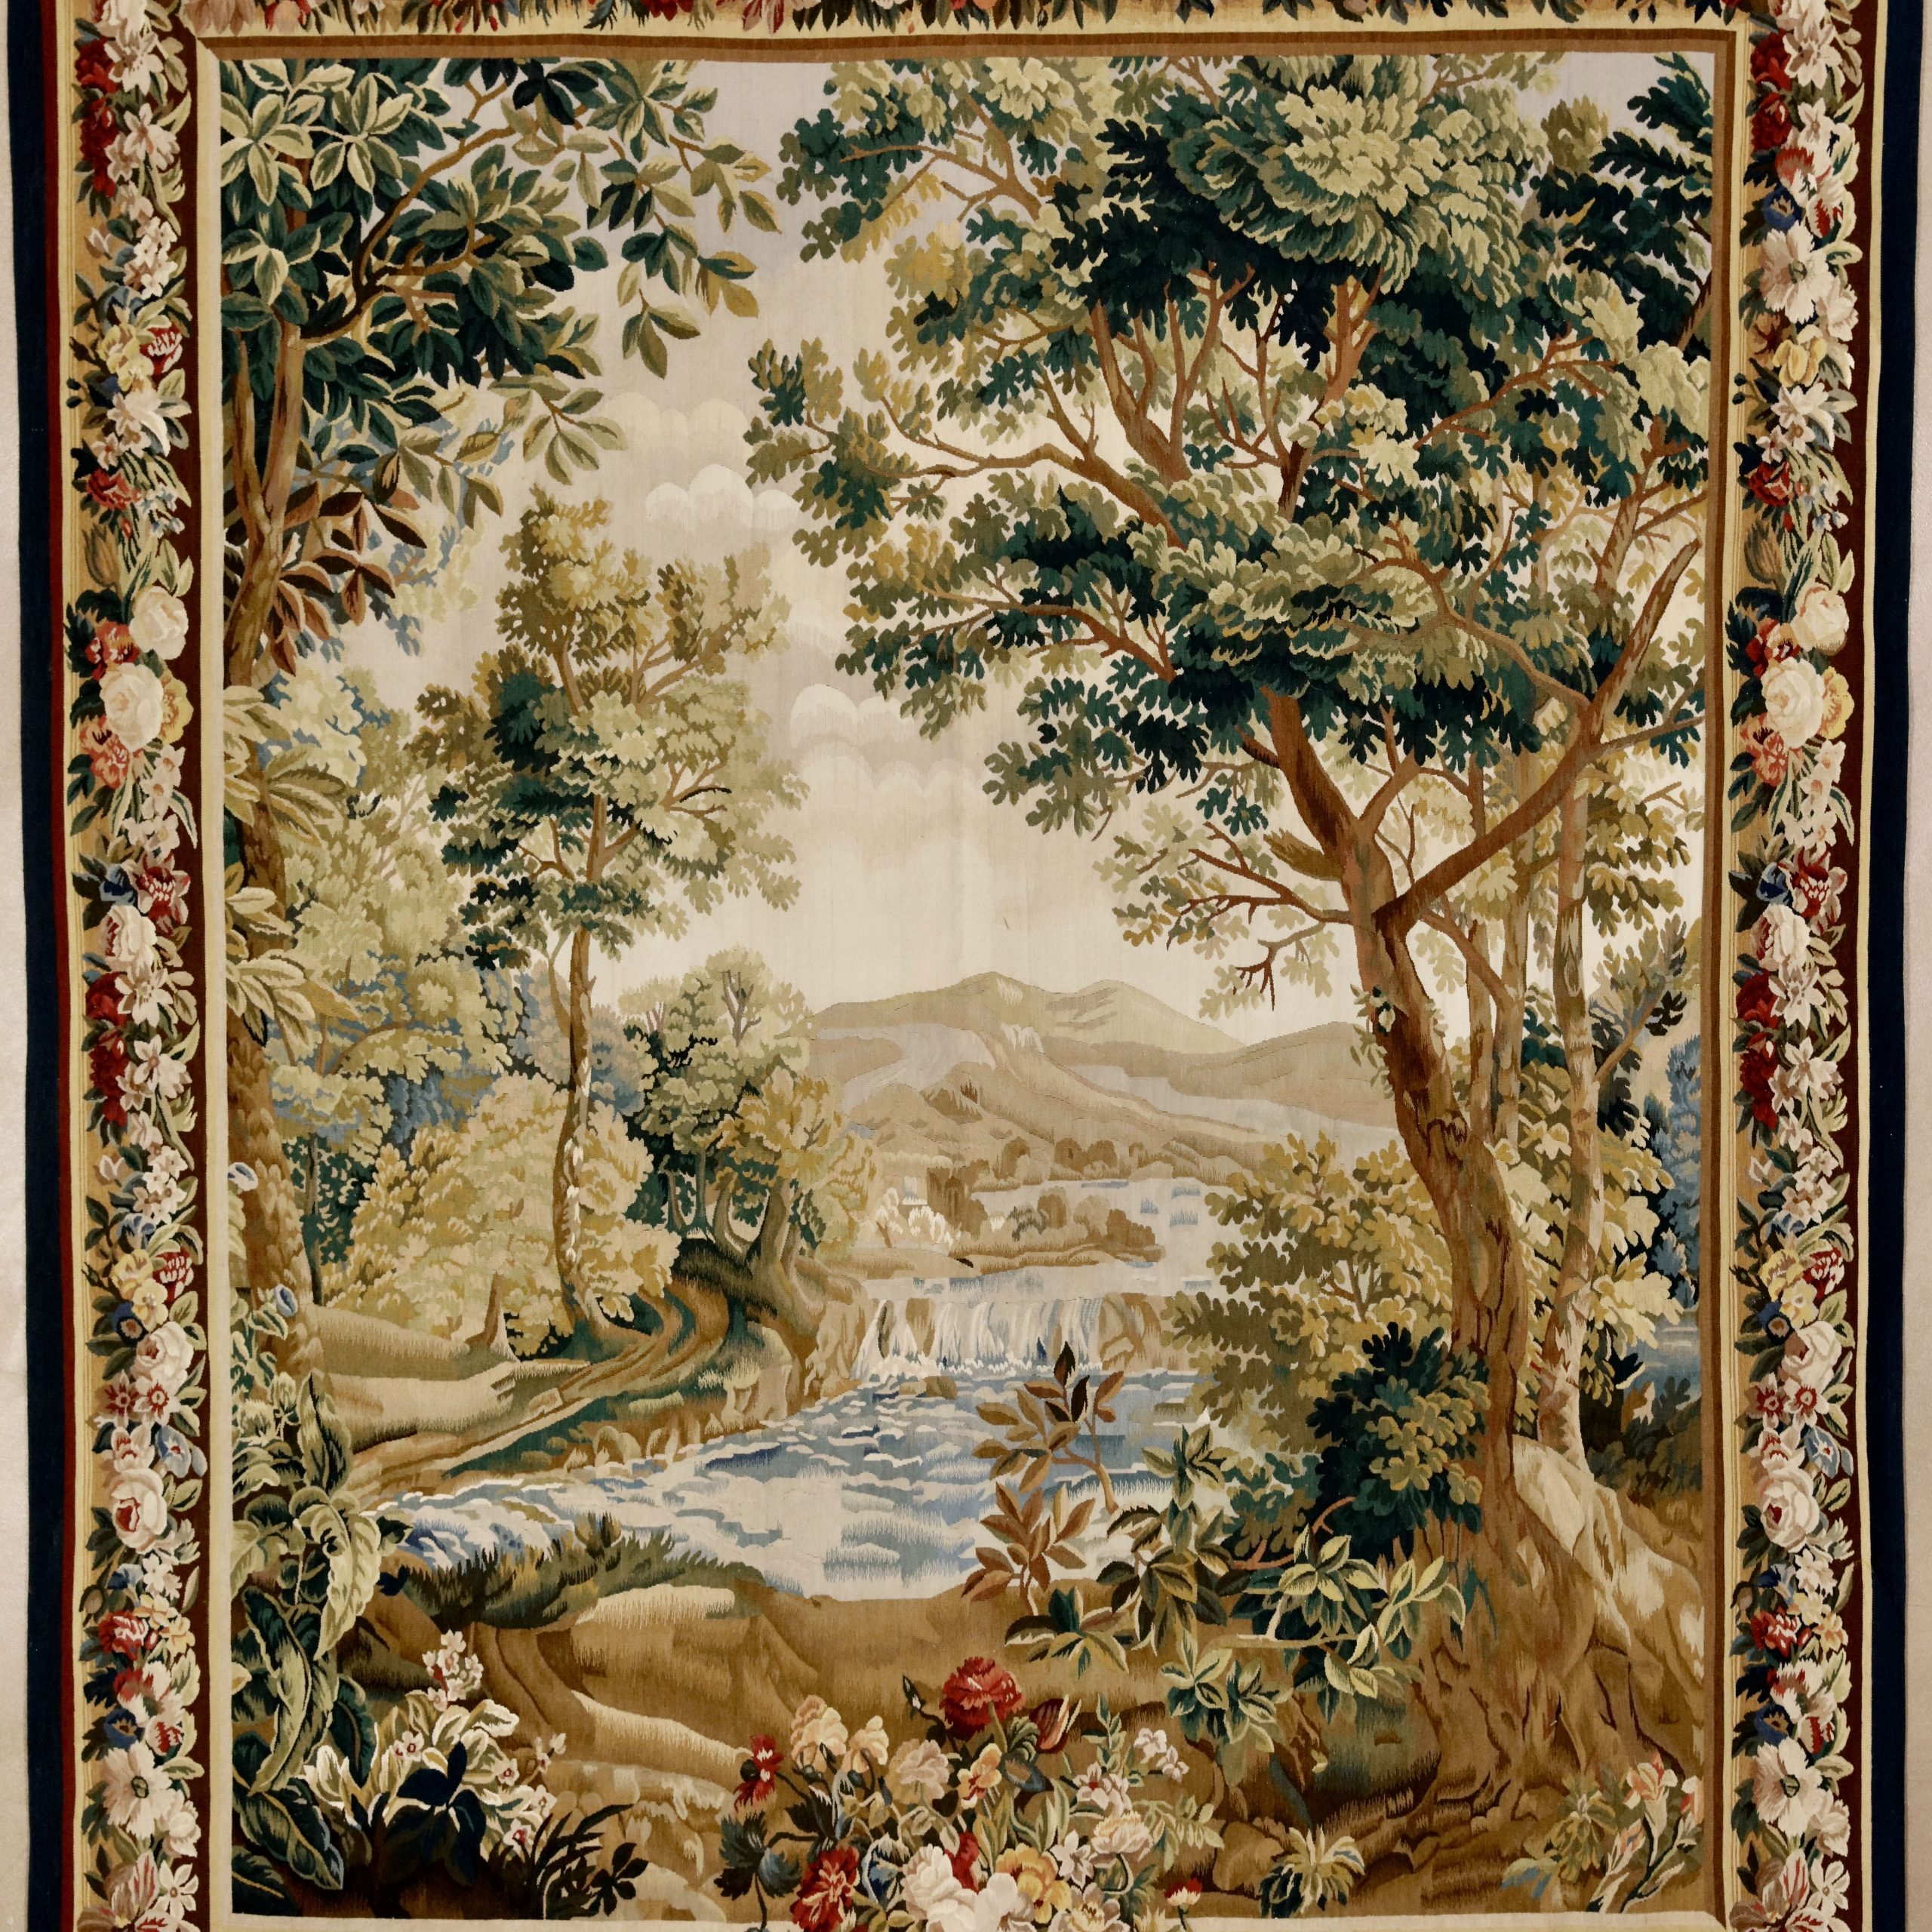 100+ Tapestry Ideas | Tapestry, Art, Medieval Tapestry In Most Current Blended Fabric Woodpecker European Tapestries (View 15 of 20)